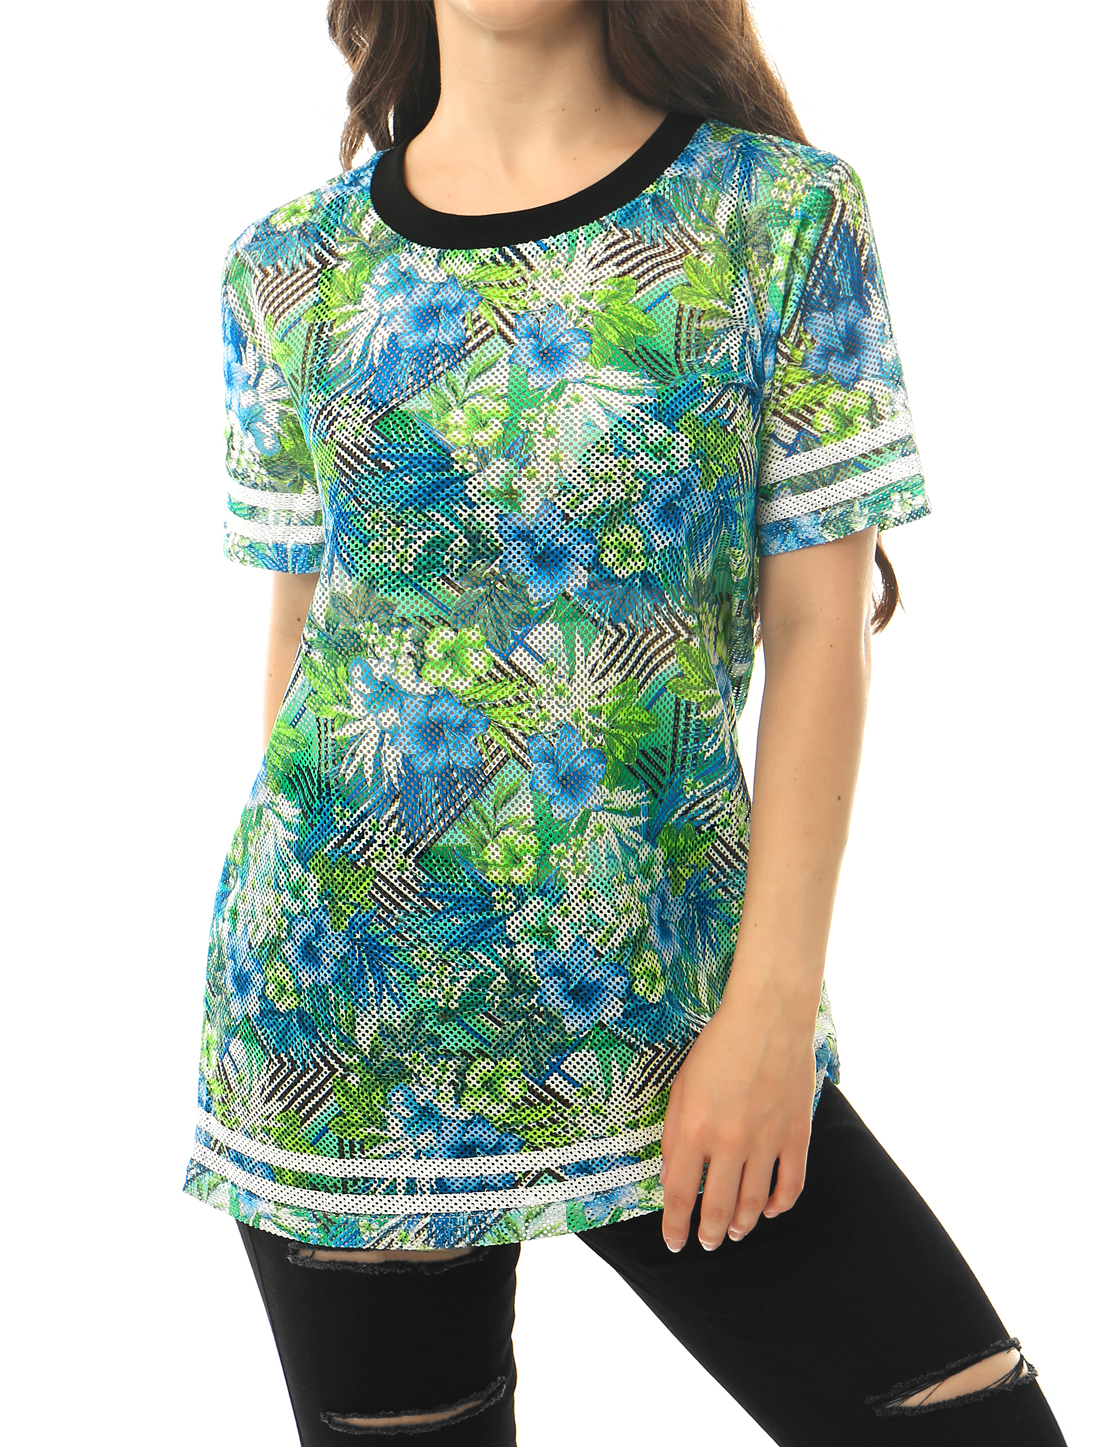 Women Short Sleeves Stripes Trim Floral Mesh Top Blue Green S